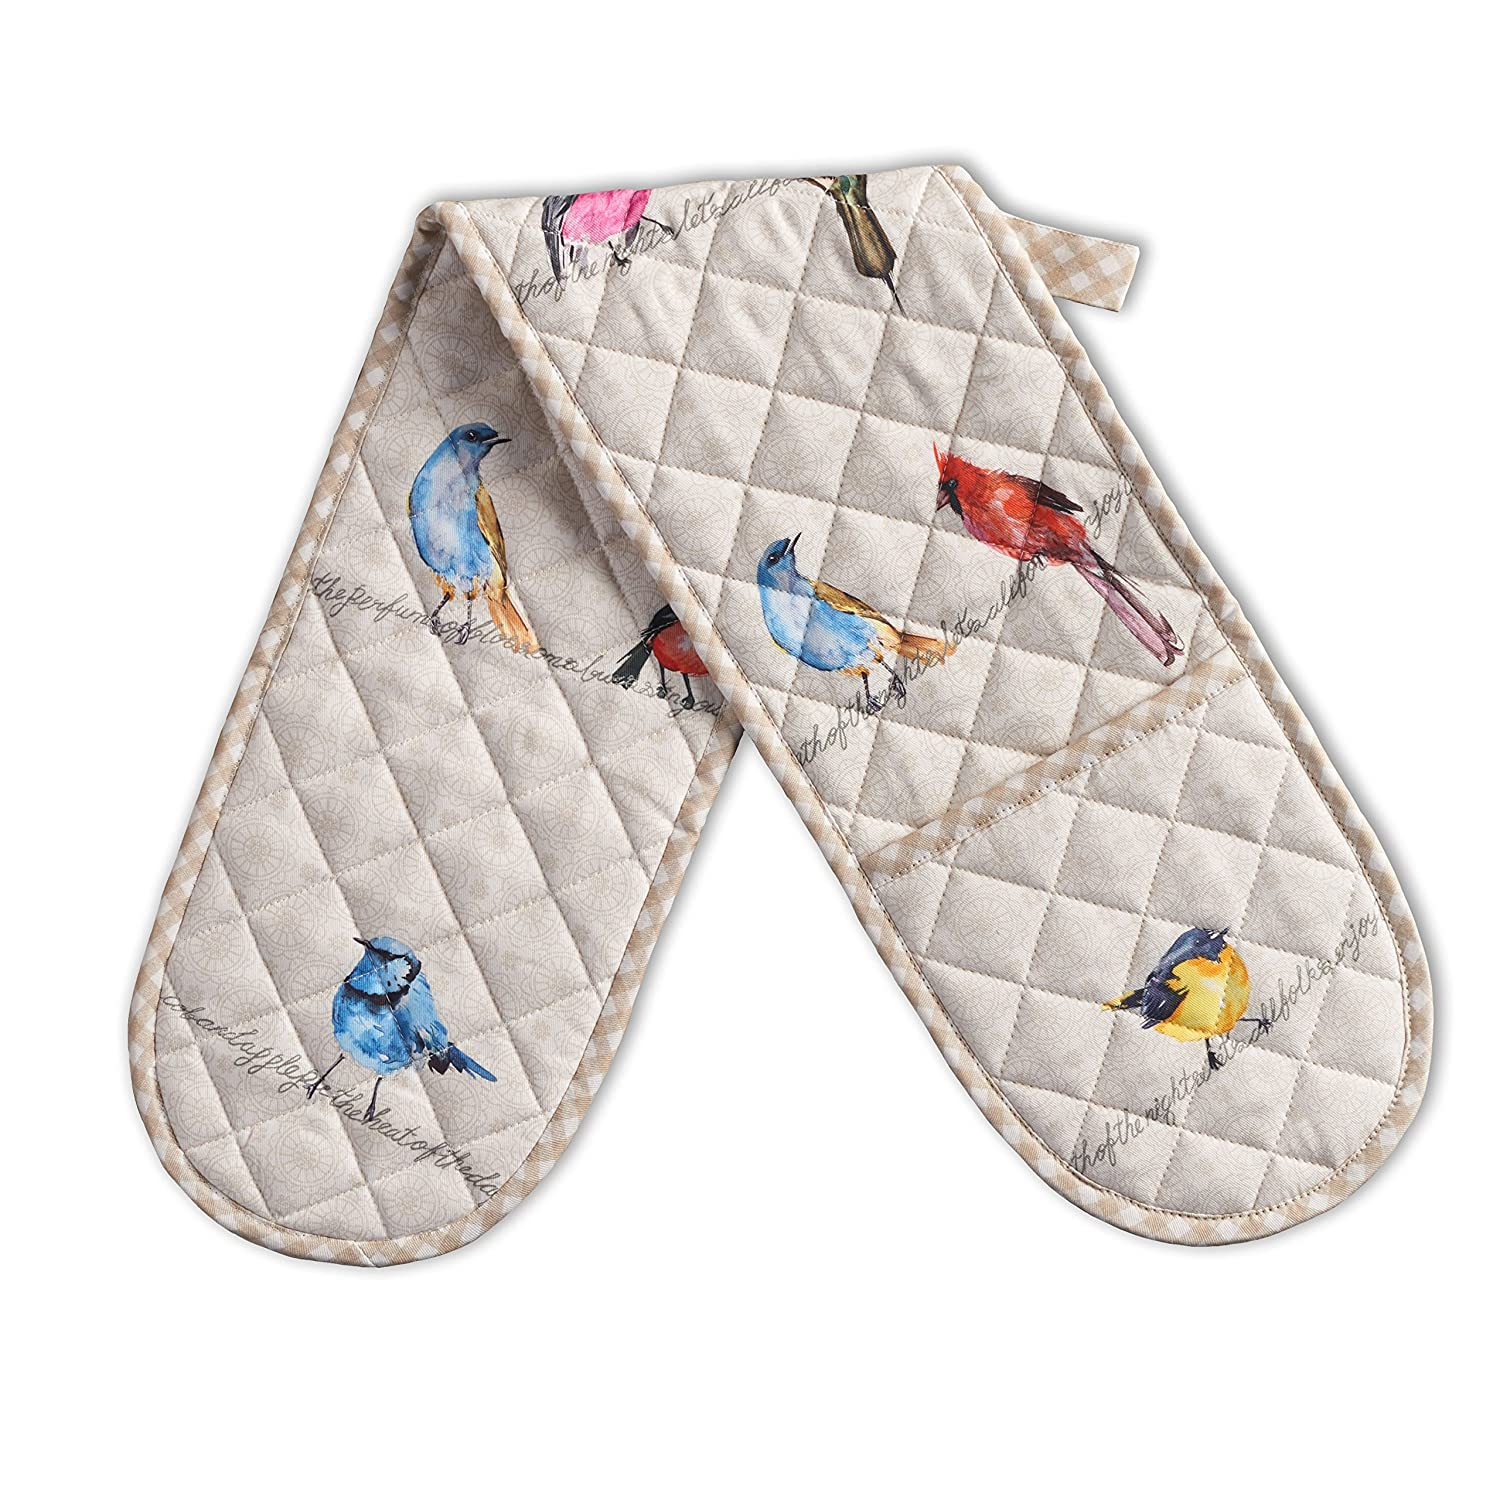 Maison d' Hermine Birdies On Wire 100% Cotton Double Oven Glove/Mitt 7.5 Inch by 35 Inch